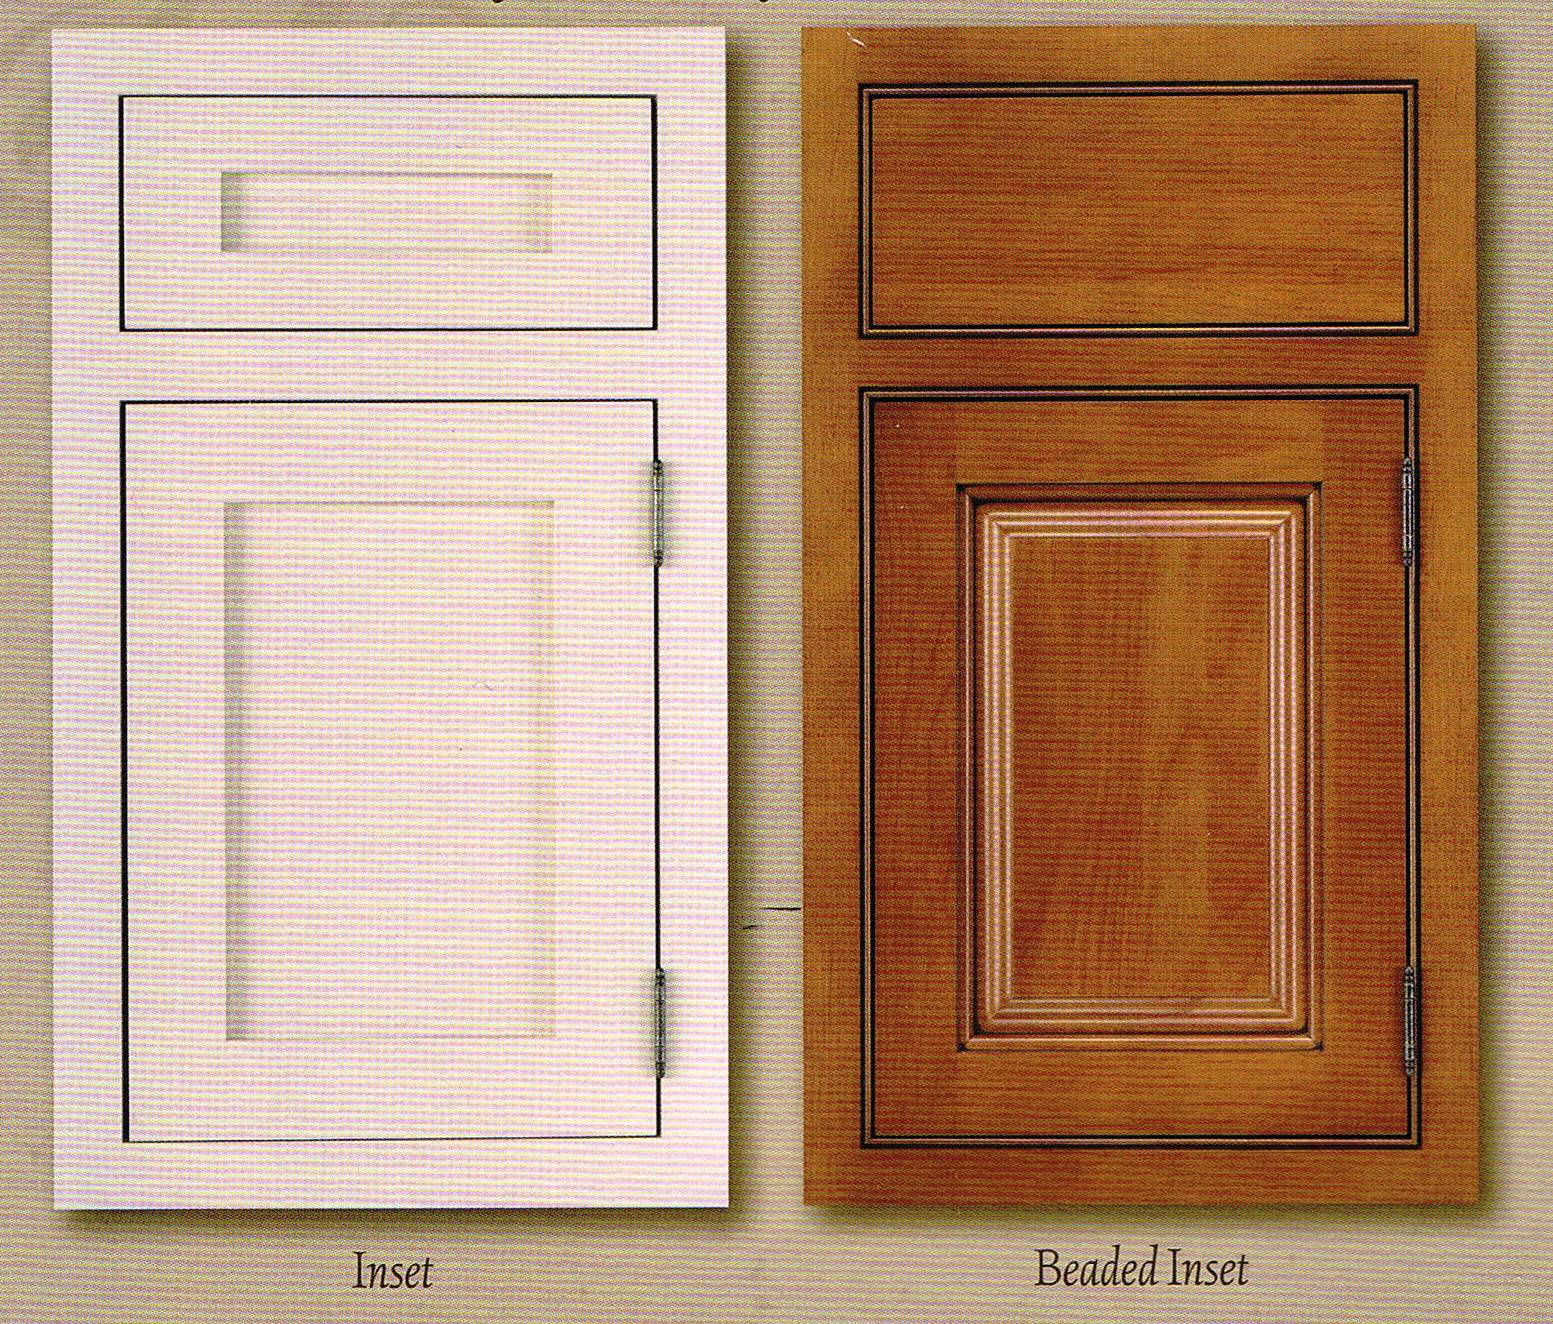 kitchen cabinets kitchen cabinets doors How to Select Kitchen Cabinets Cabinetry Overlay Styles